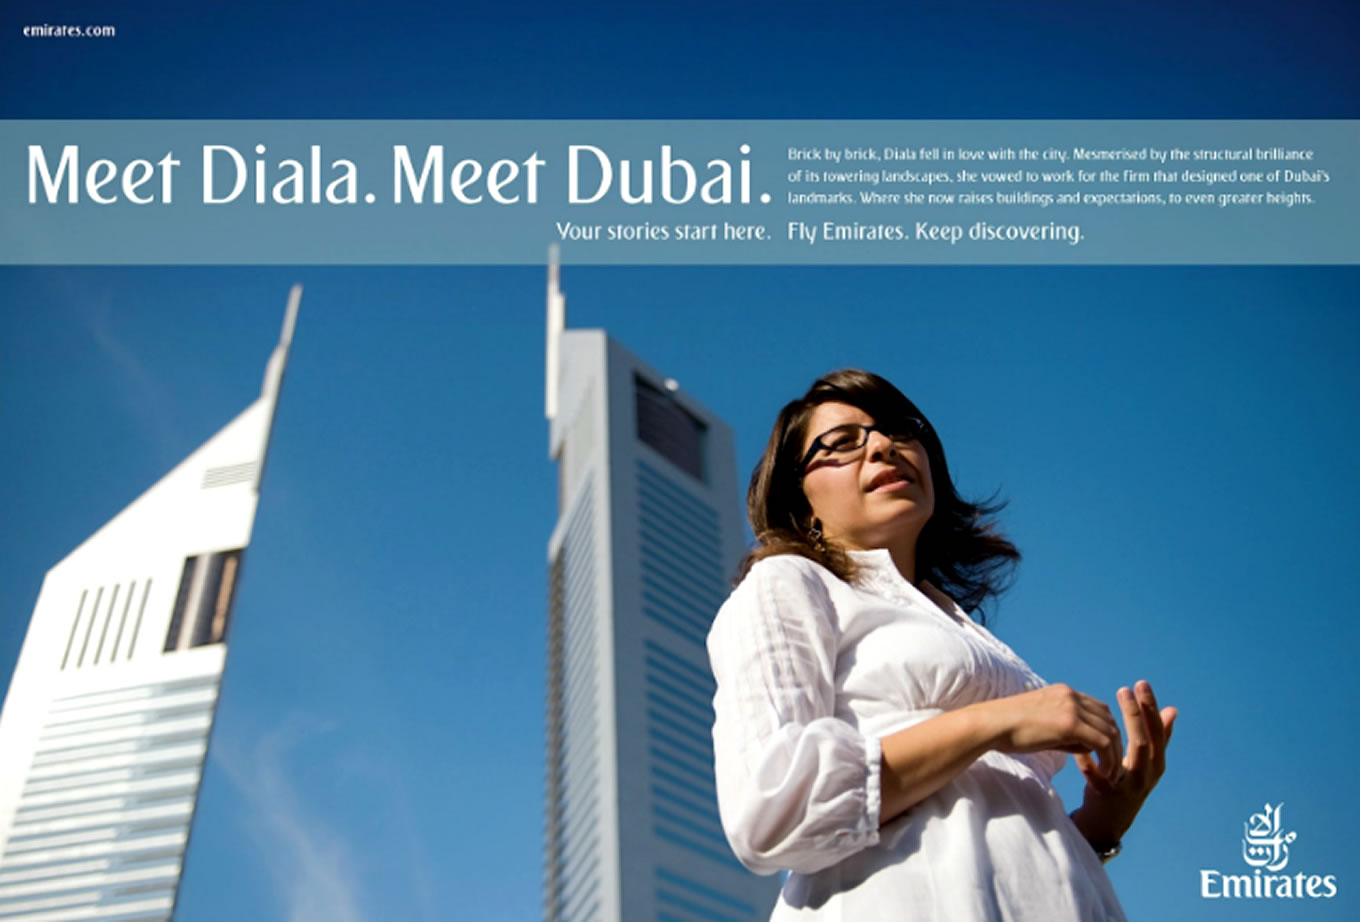 Meet Diala, Meet Dubai Advertising Campaign by Emirates